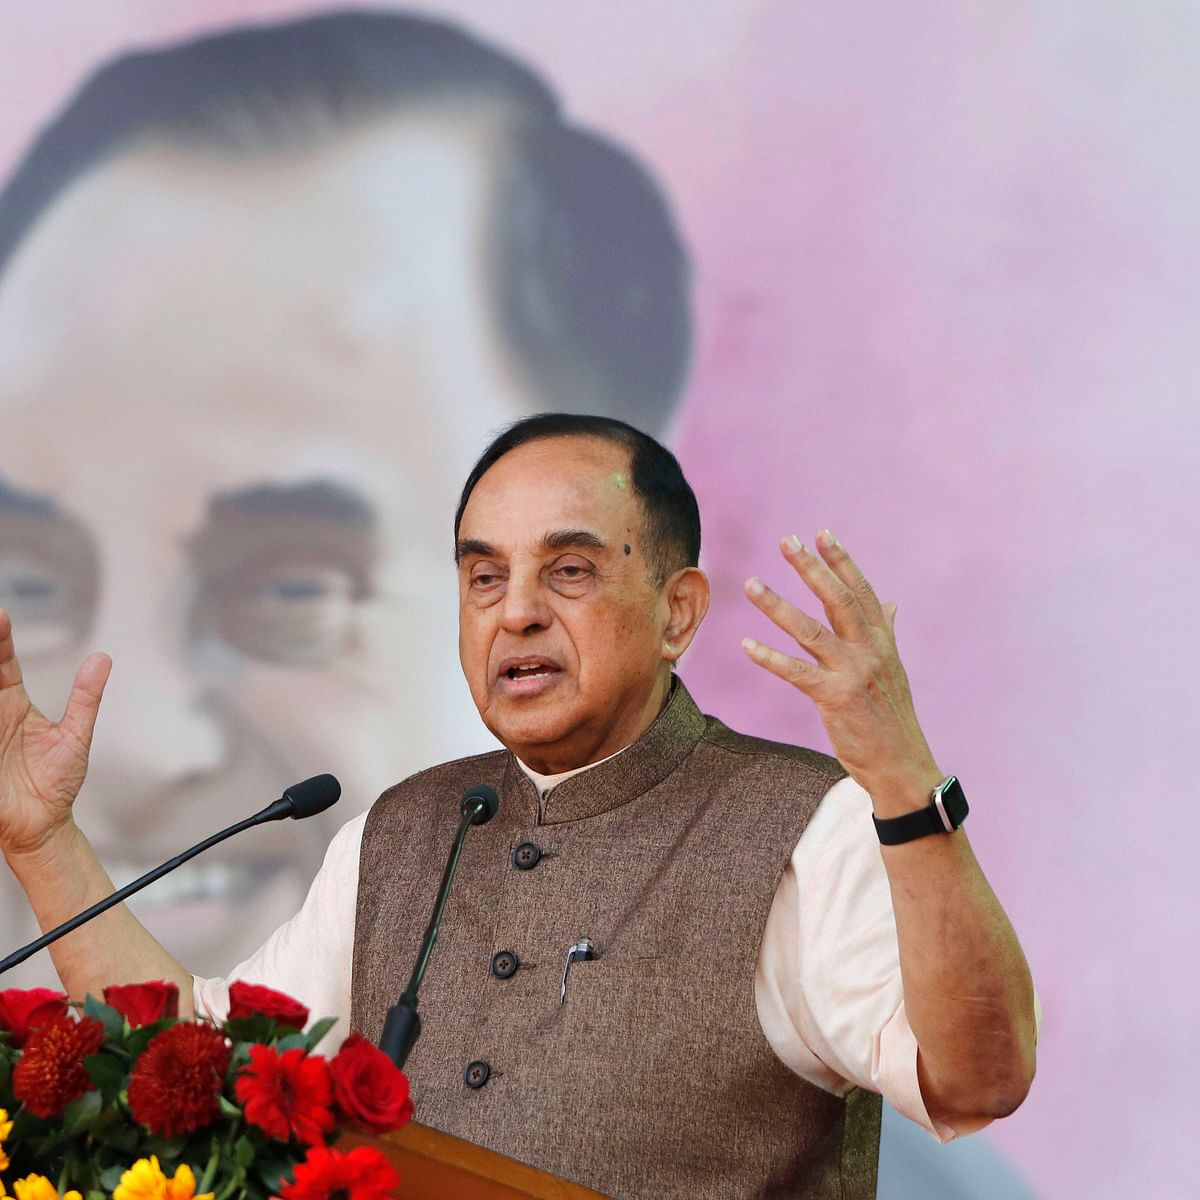 'Finally Swamy has qualified to be one of our ministers': Twitter roast Subramanian for 'Goddess Lakshmi' remark